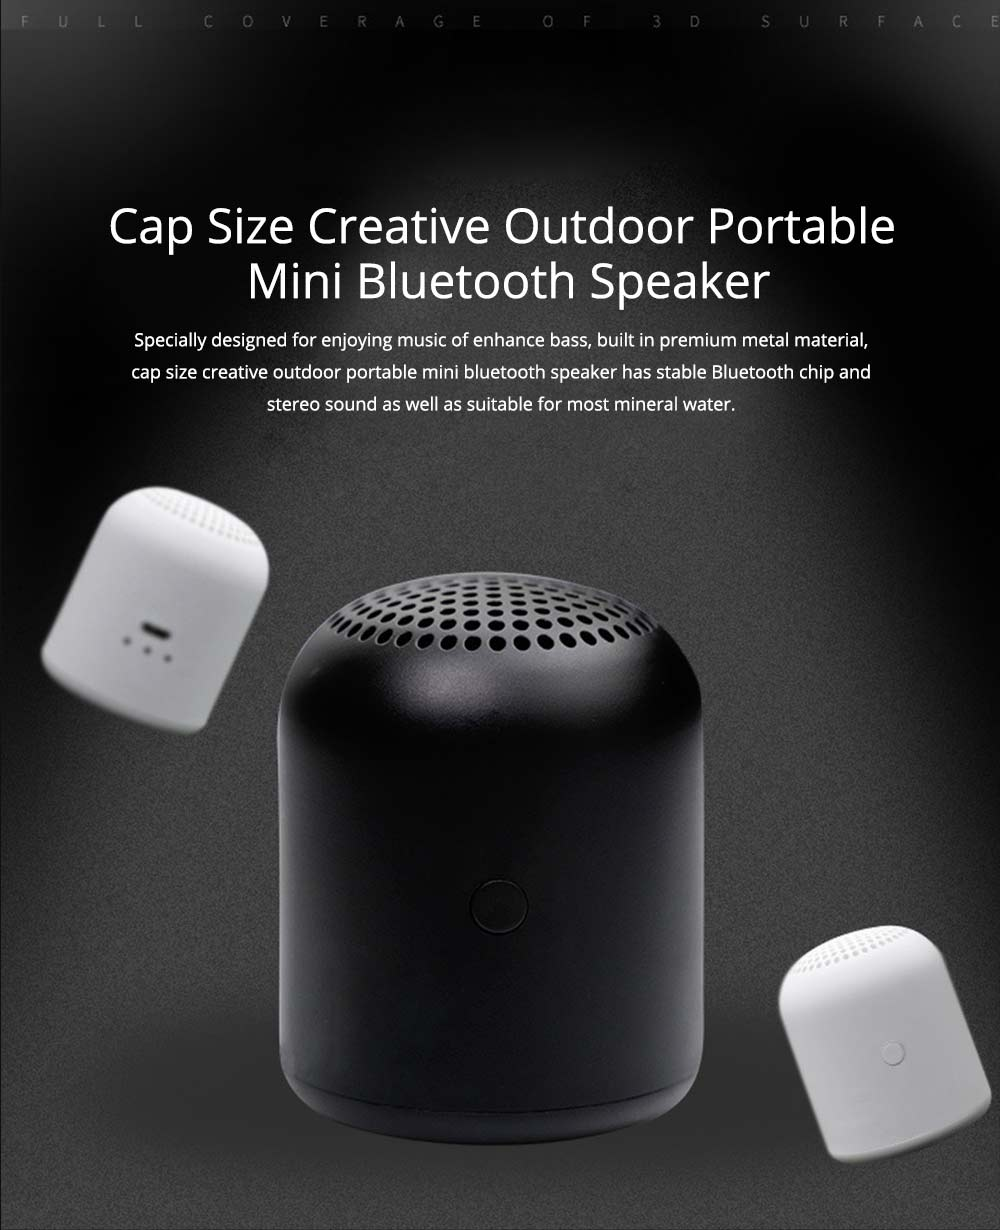 Home Outdoor Portable Mini Bluetooth Speaker for Company Gift 0